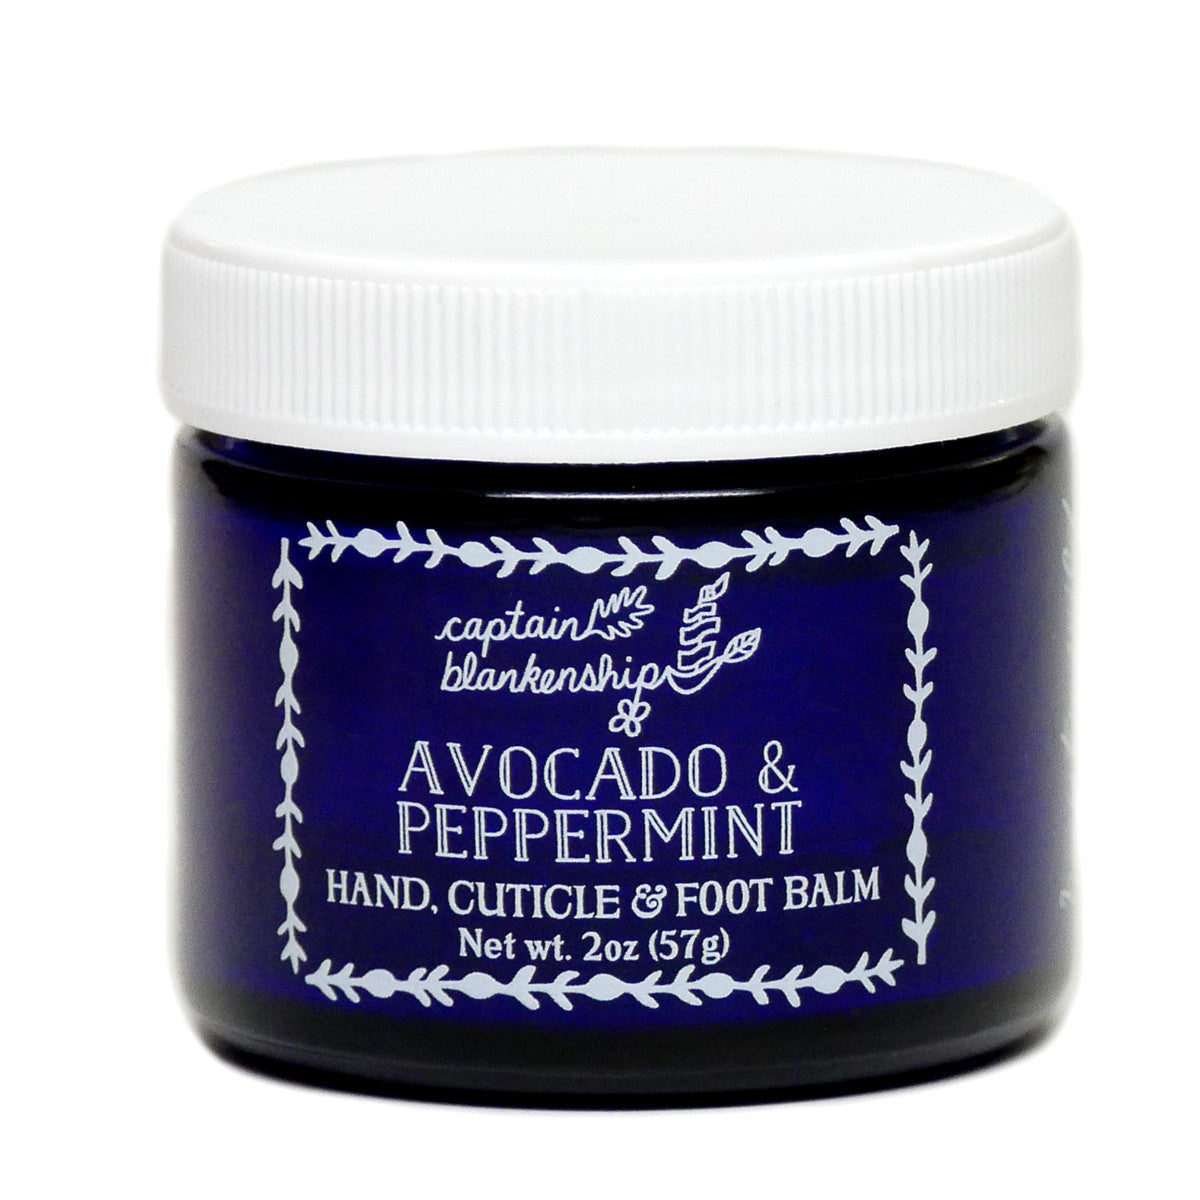 Avocado & Peppermint Hand, Cuticle, Foot Balm